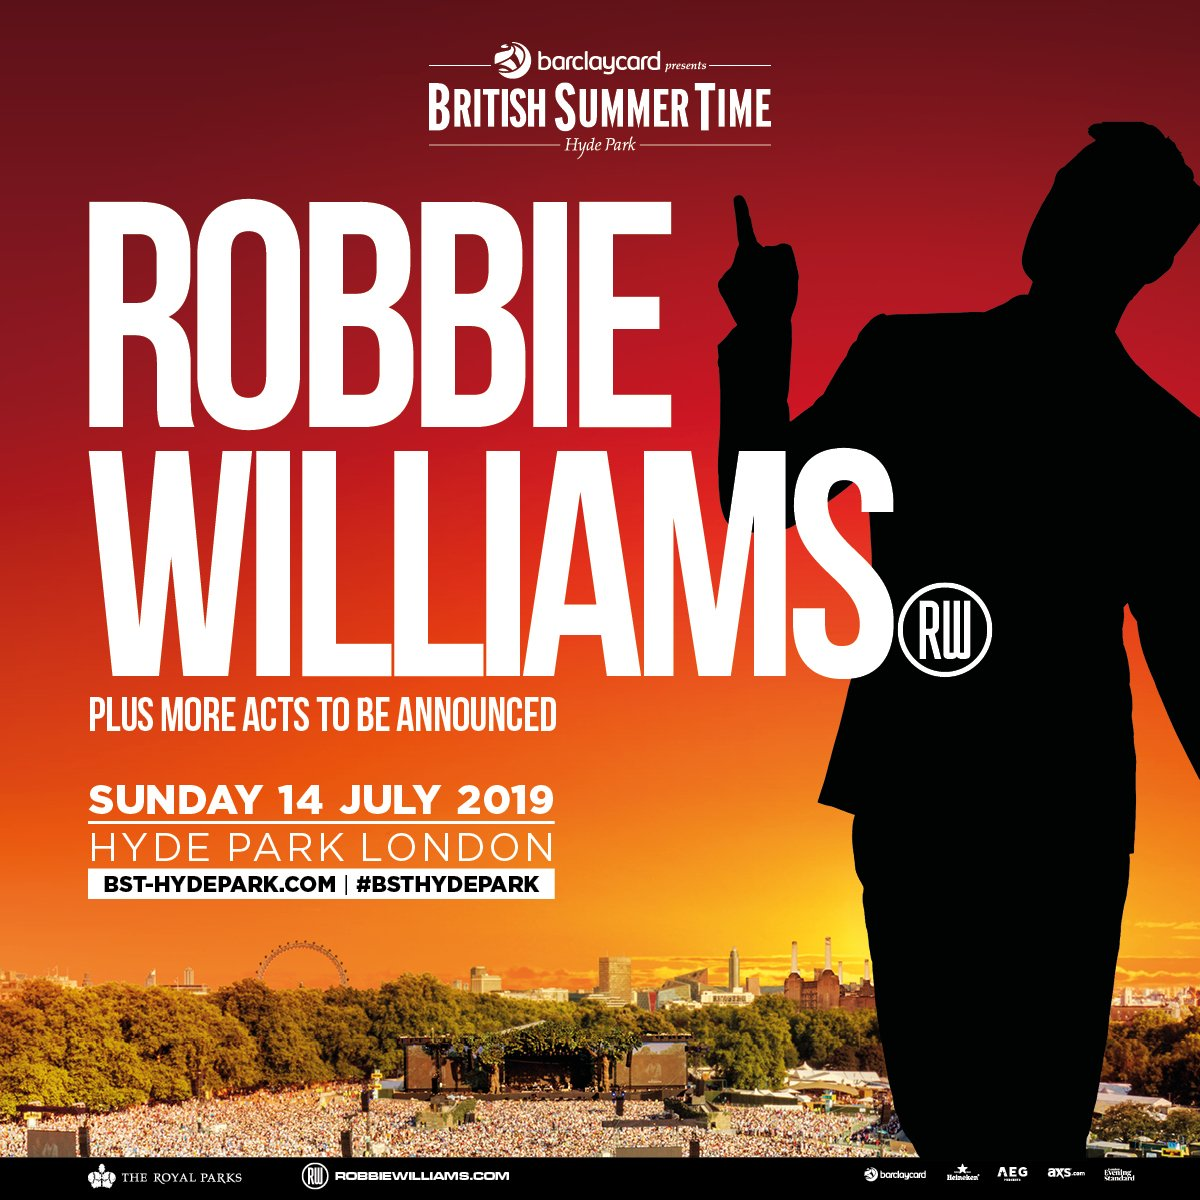 Huge thank you to everyone who bought a ticket to @BSTHydePark in the pre-sale - I can't wait to see you next summer! If you missed out on pre-sale tickets, the general sale is open NOW >> https://t.co/XO0DYL9C0e #BSTHydePark #RobbieLive https://t.co/YZBbFhaCze